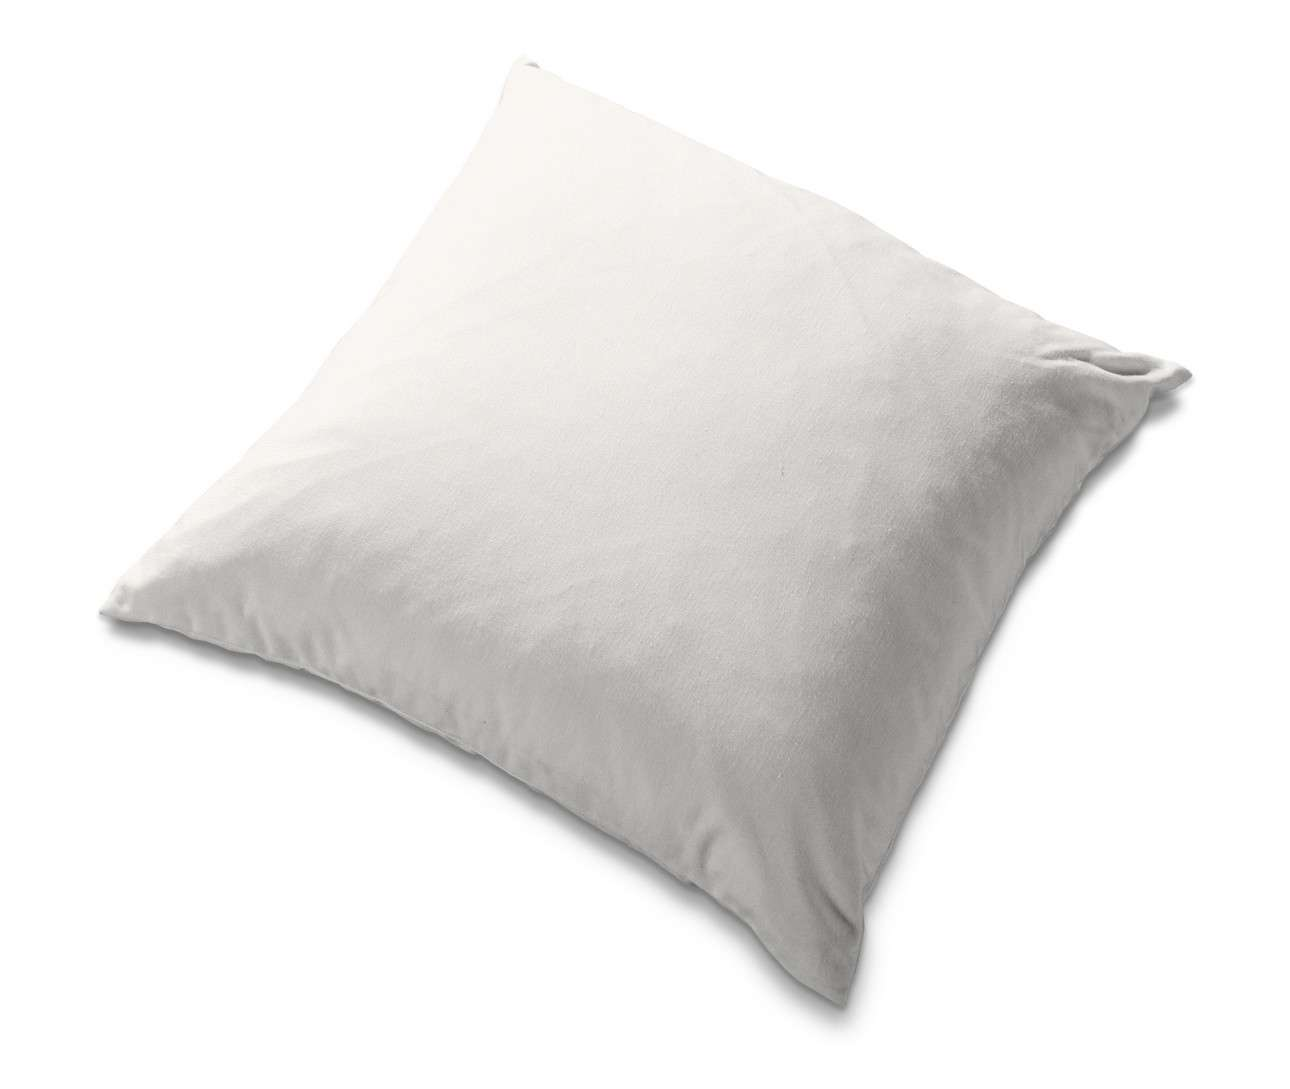 Tomelilla cushion cover 55 × 55 cm (22 × 22 inch) in collection Panama Cotton, fabric: 702-34